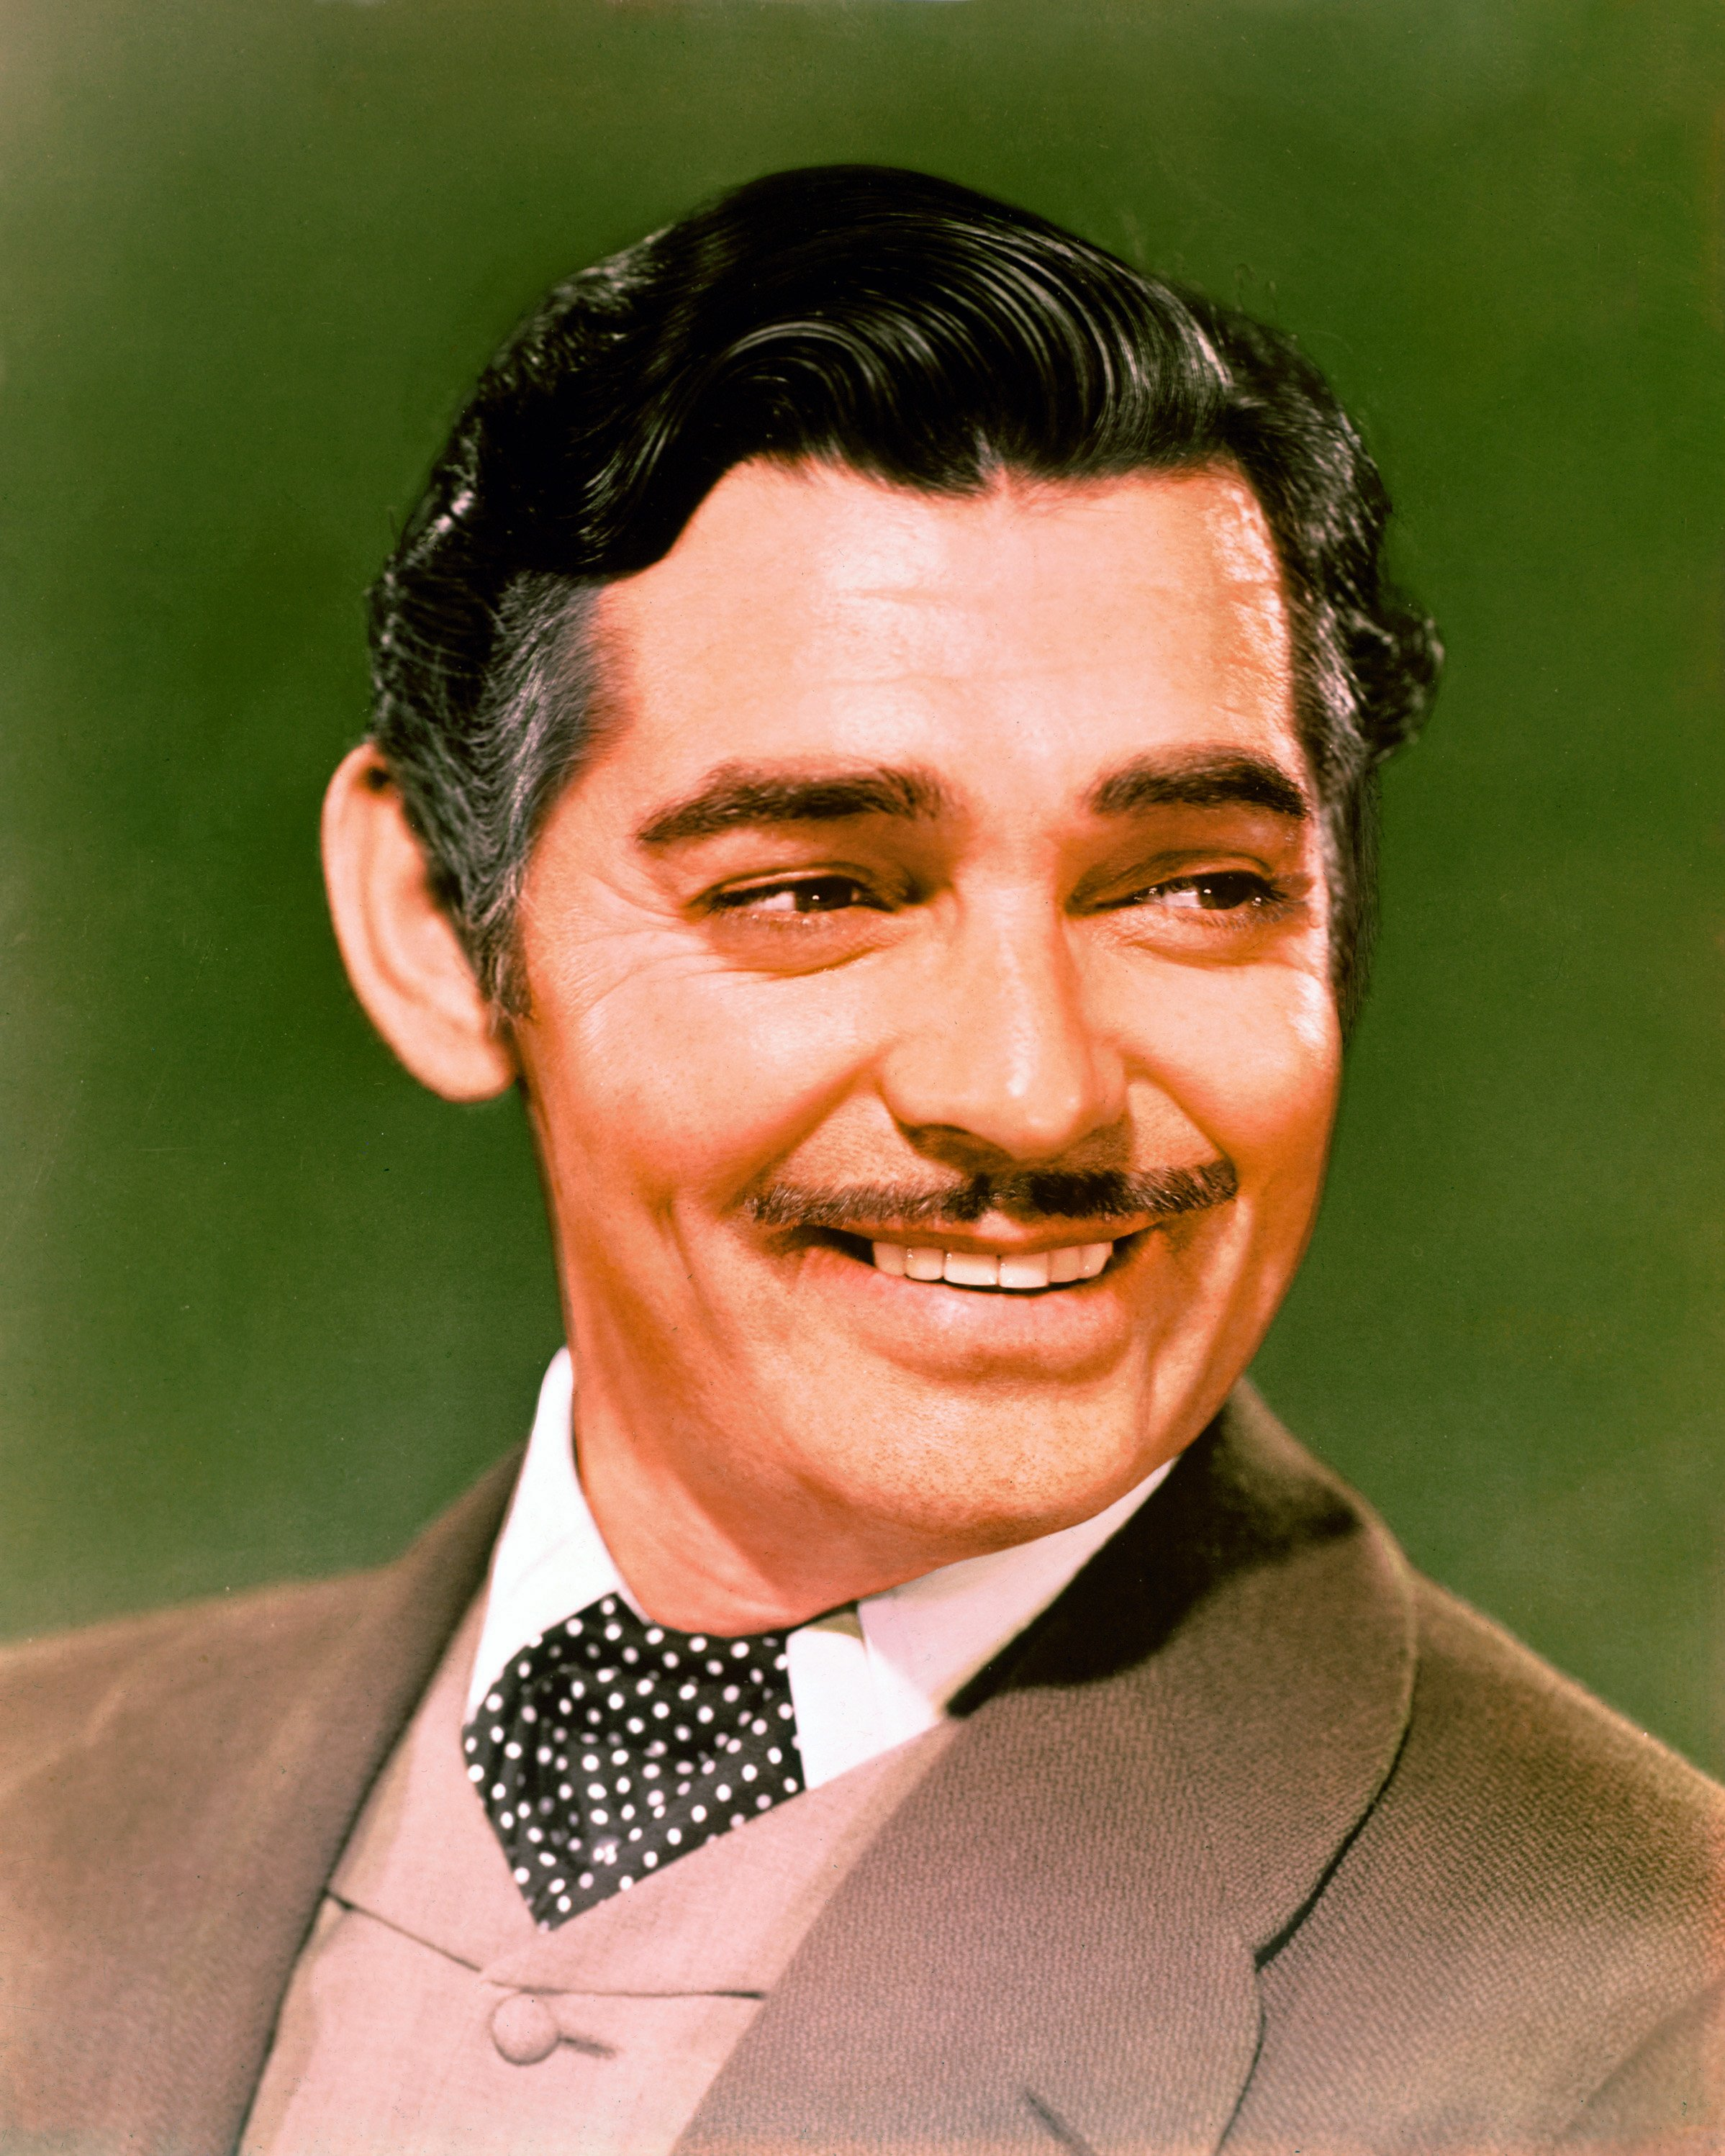 Headshot of Clark Gable (1901–1960), US actor, smiling in a publicity portrait issued for the film, 'Gone With The Wind', USA, 1939. The 1939 drama, directed by Victor Fleming (1889–1949), starred Gable as 'Rhett Butler'. | Source: Getty Images